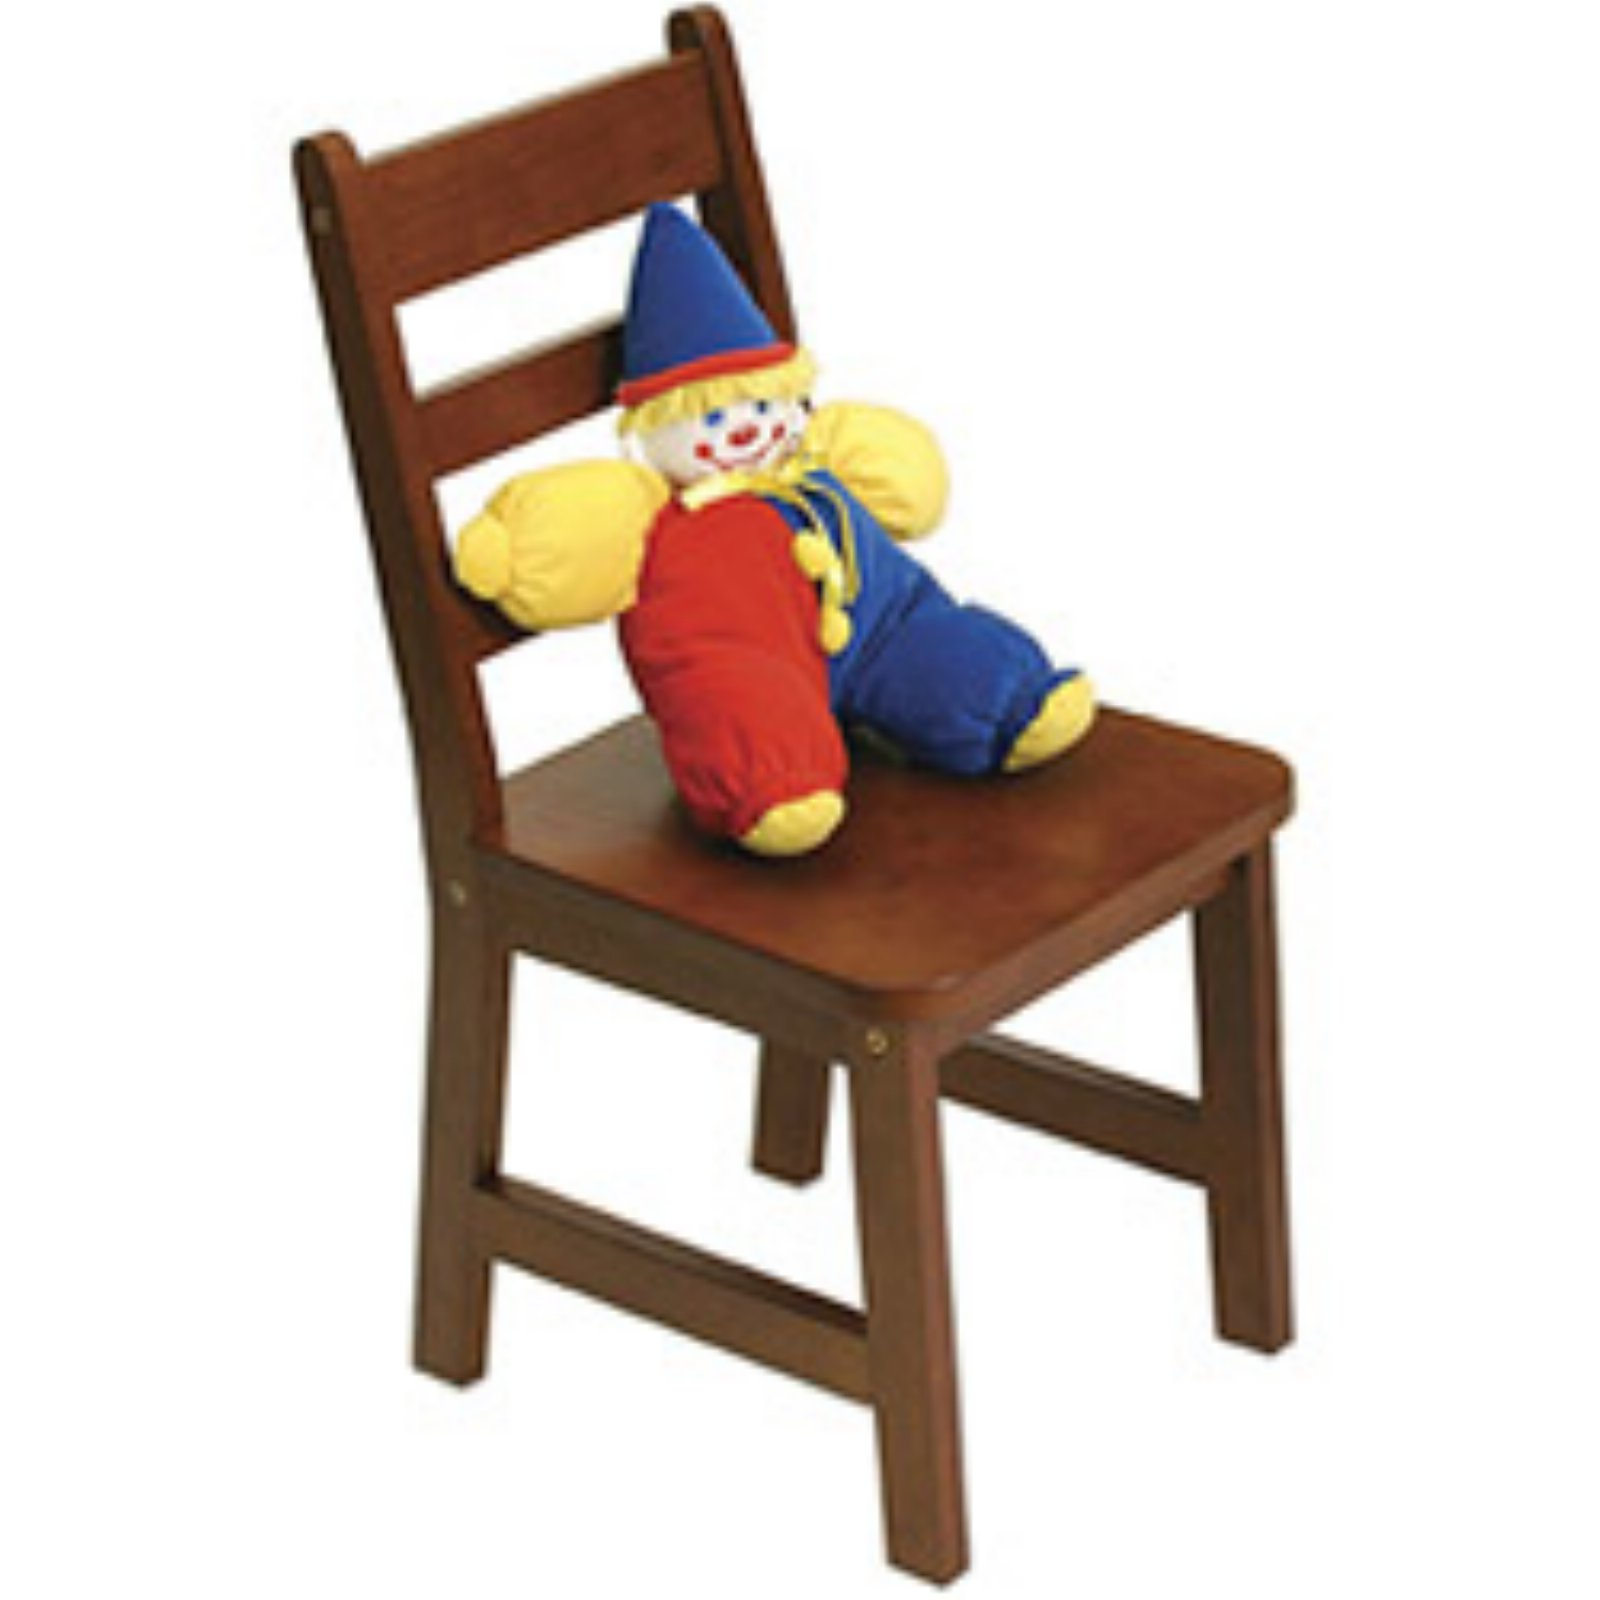 Lipper Extra Set of 2 Childrens Chairs by Lipper International